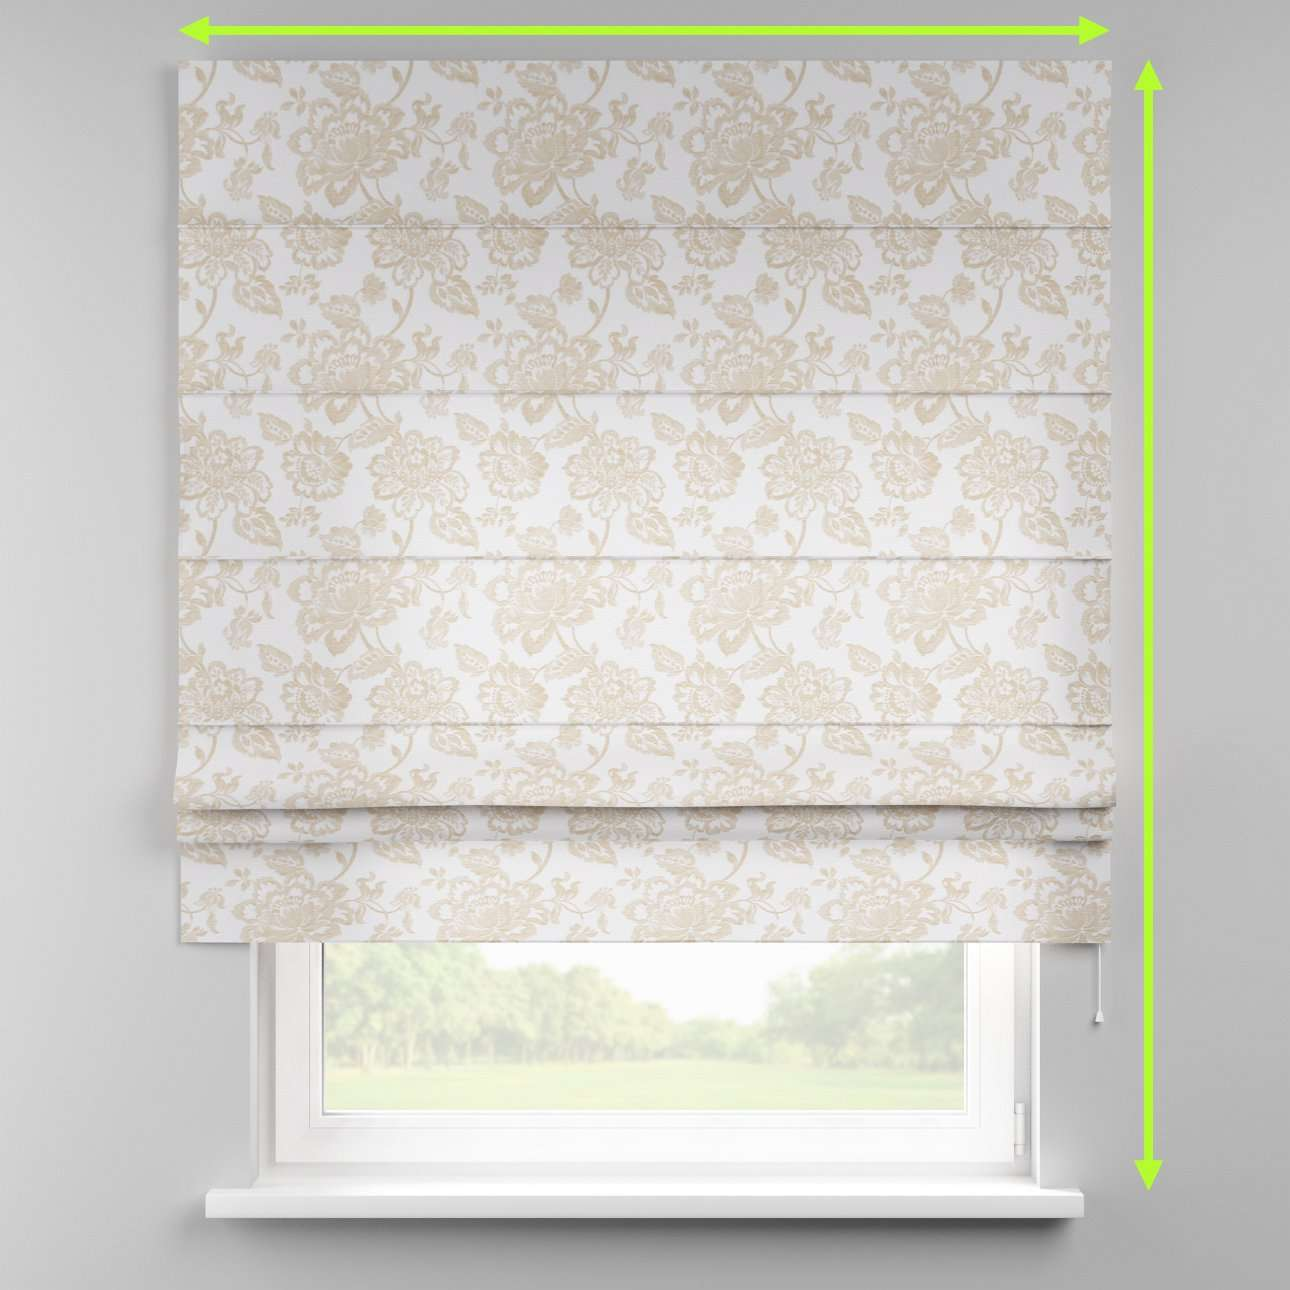 Padva roman blind  in collection Rustica, fabric: 138-23